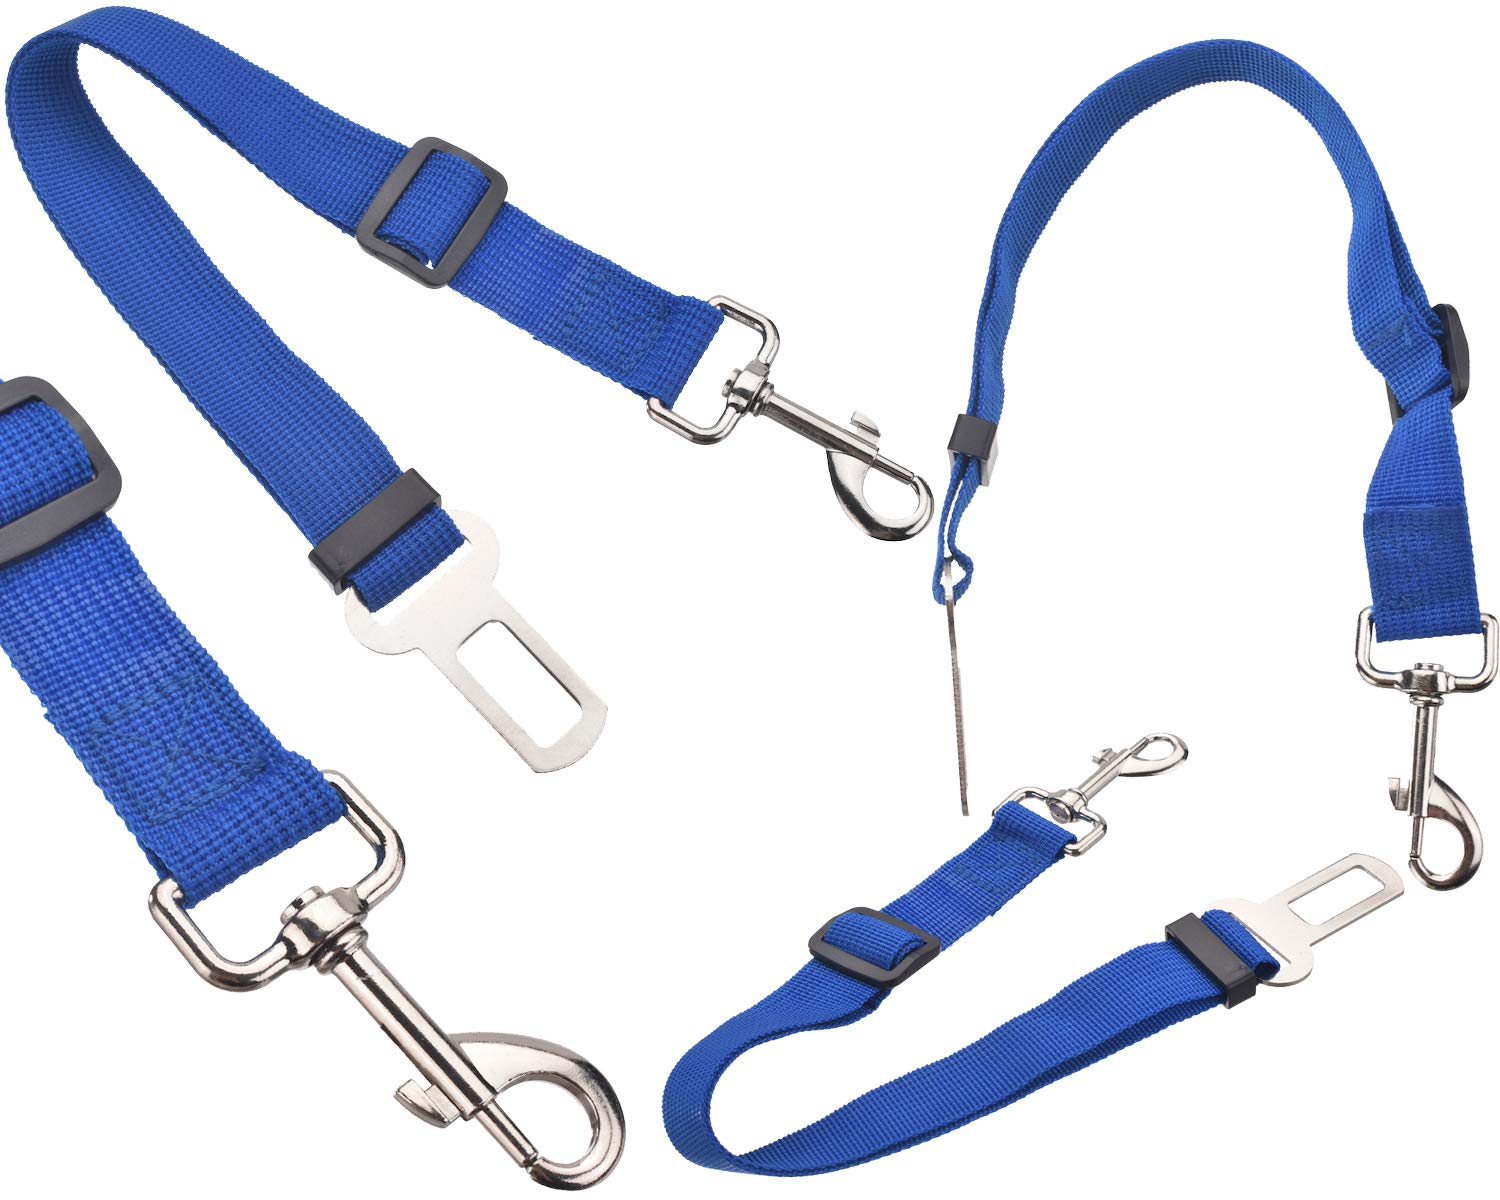 BisLinks Pet Cane Car Seat Belt Safety Vehicle Regolabile 42cm to 68cm Harnesses Condurre Attachment Moderazione Strap Clip Blu